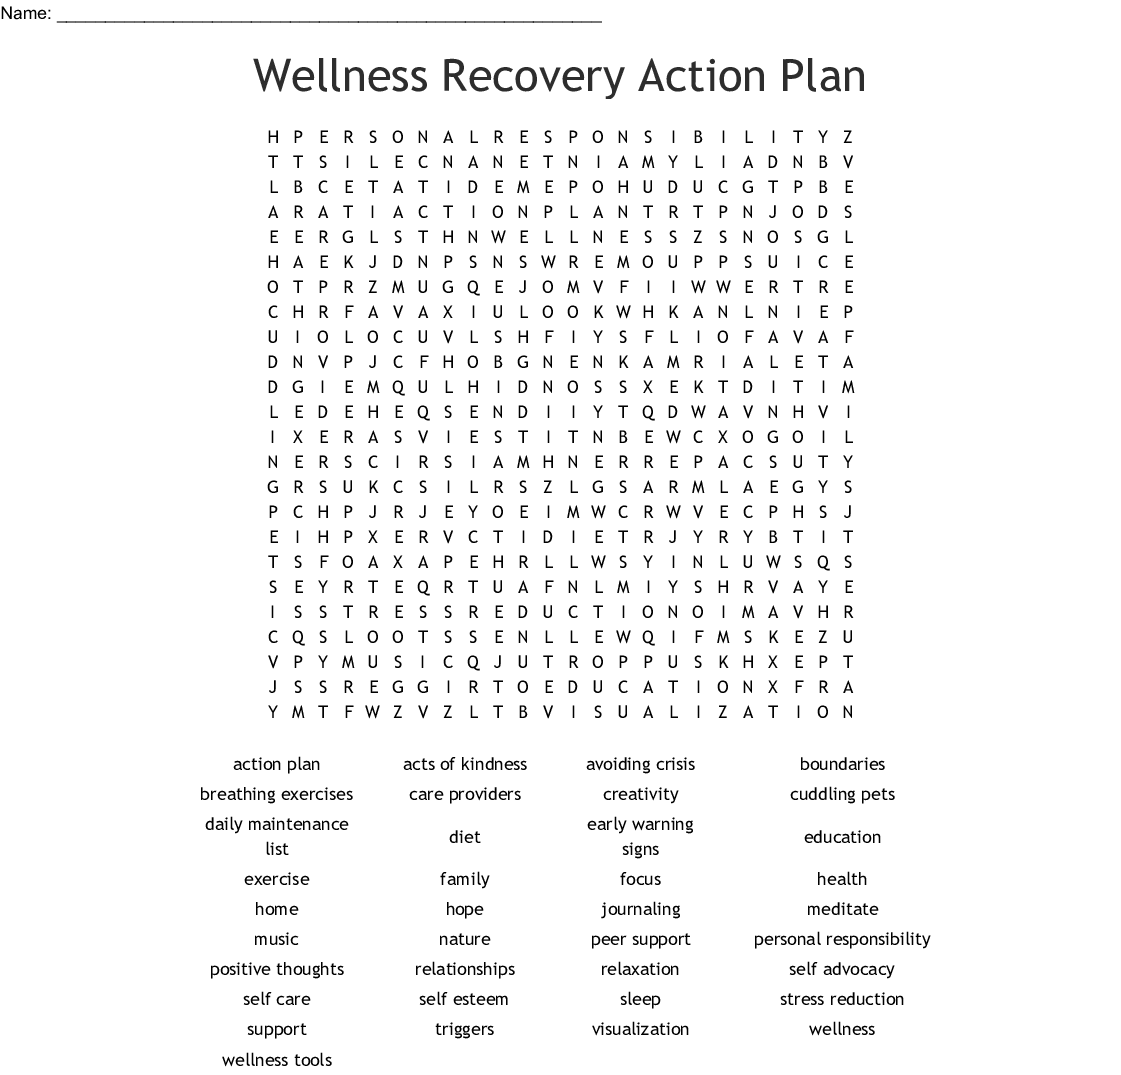 Wellness Recovery Action Plan Word Search Wordmint